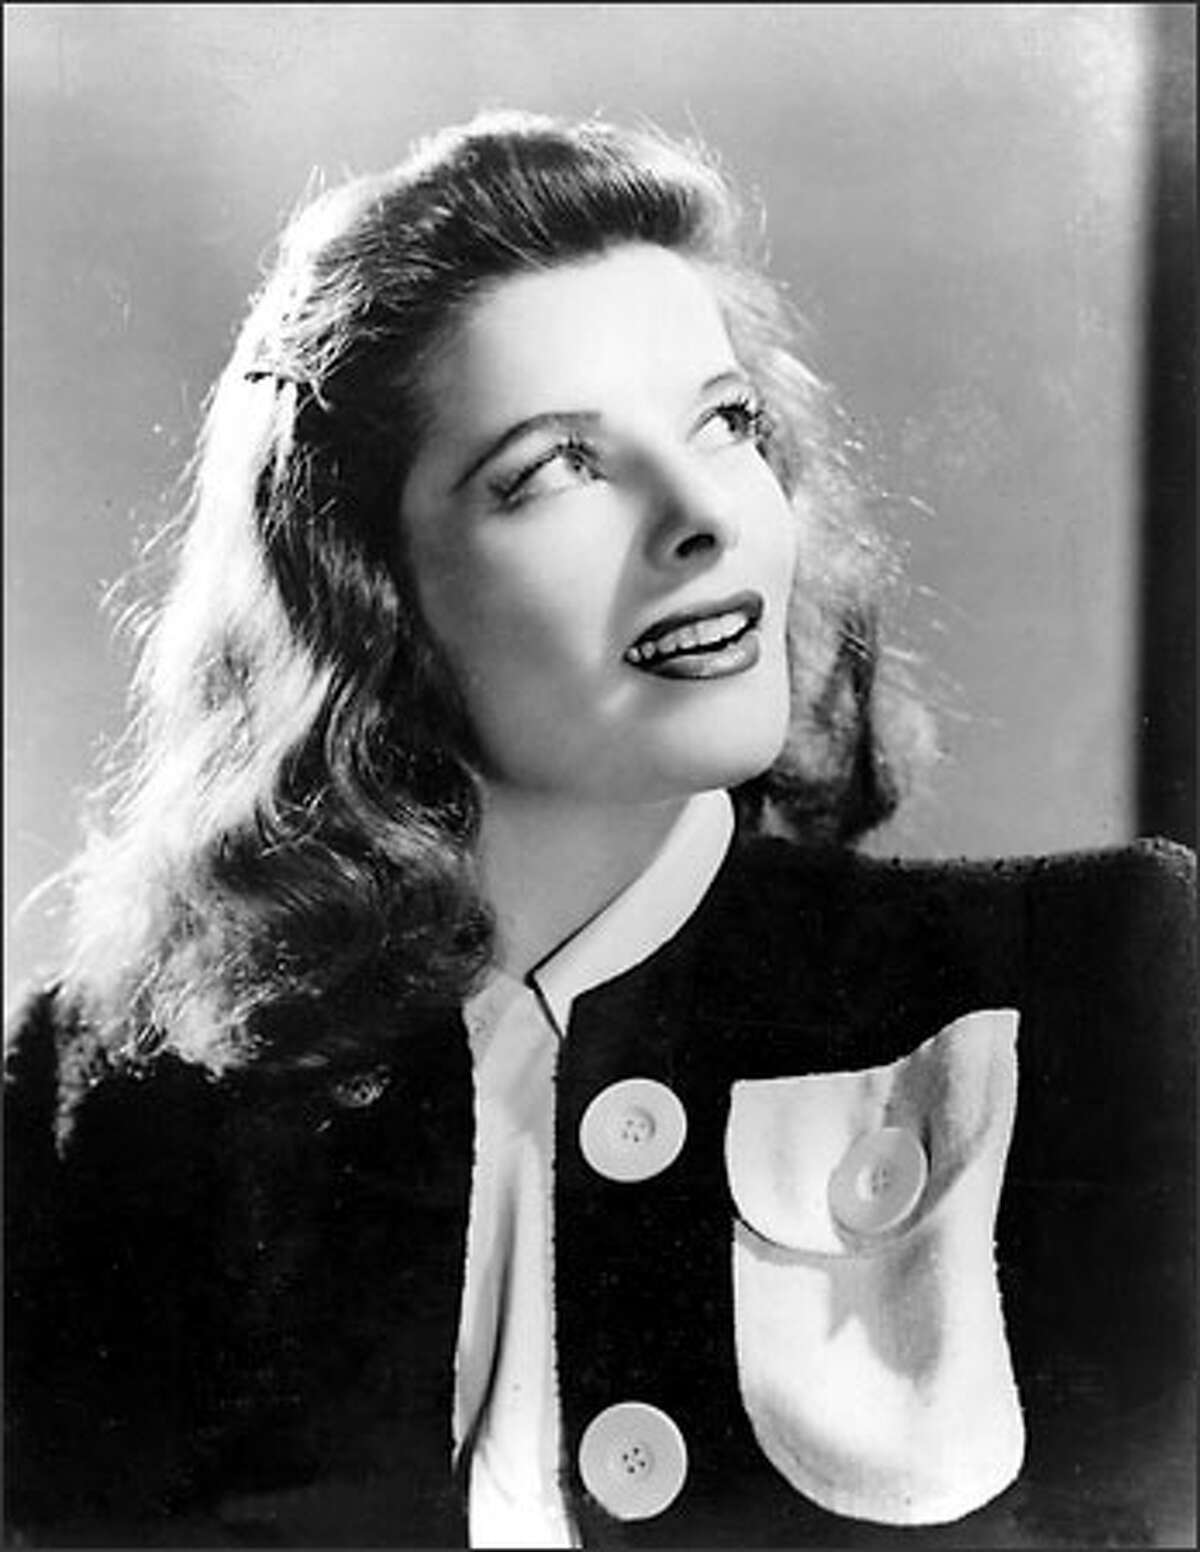 Actress Katharine Hepburn is shown in 1941. Hepburn, an icon of feminist strength and spirit, brought a chiseled beauty and patrician bearing to such films as